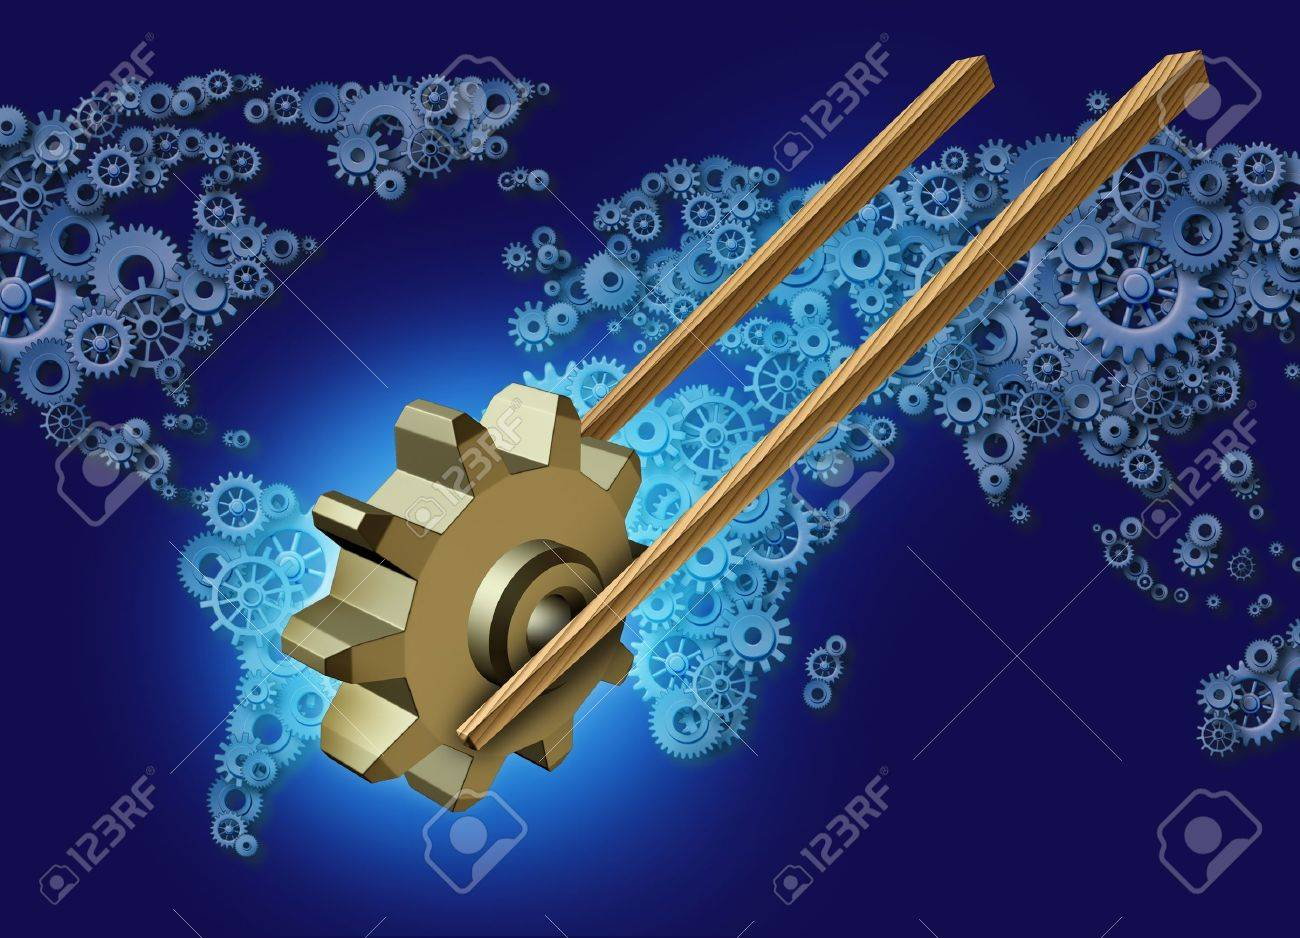 Asia export business concept for global trade as a pair of wooden chopsticks transporting a three dimensional gear or cog industry icon on a group of gears and cogs shaped as a world map for Asian global partners Stock Photo - 20948354